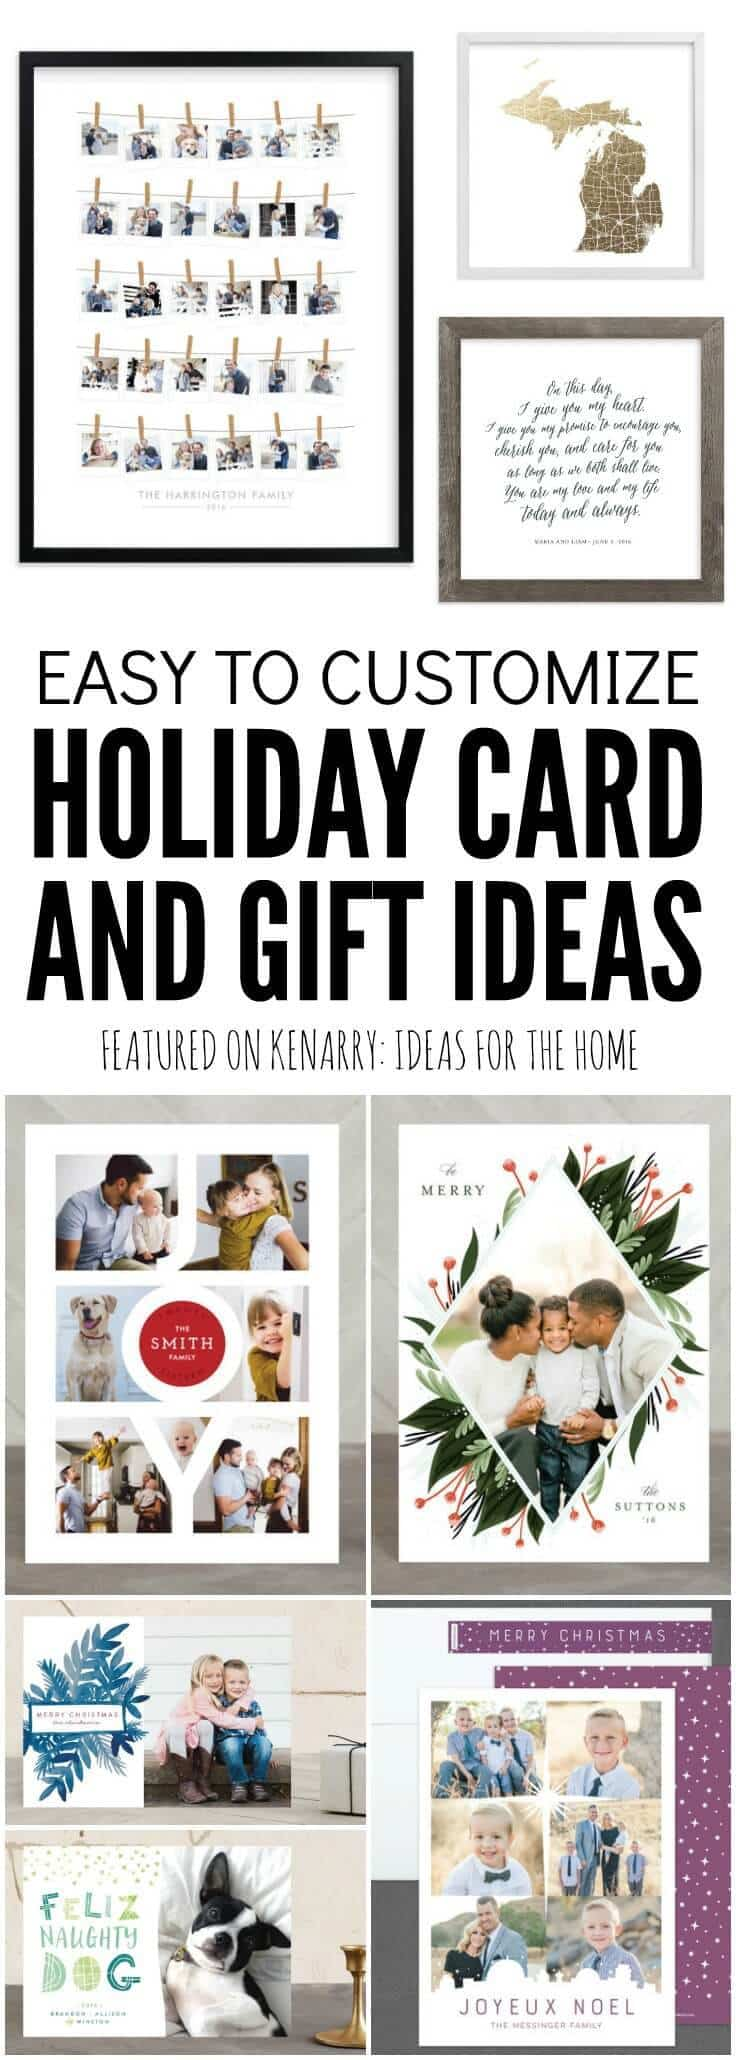 Love these unique ideas for easy to customize holiday cards and gifts from Minted! We'll be able to create something one-of-a-kind and special for everyone this Christmas.